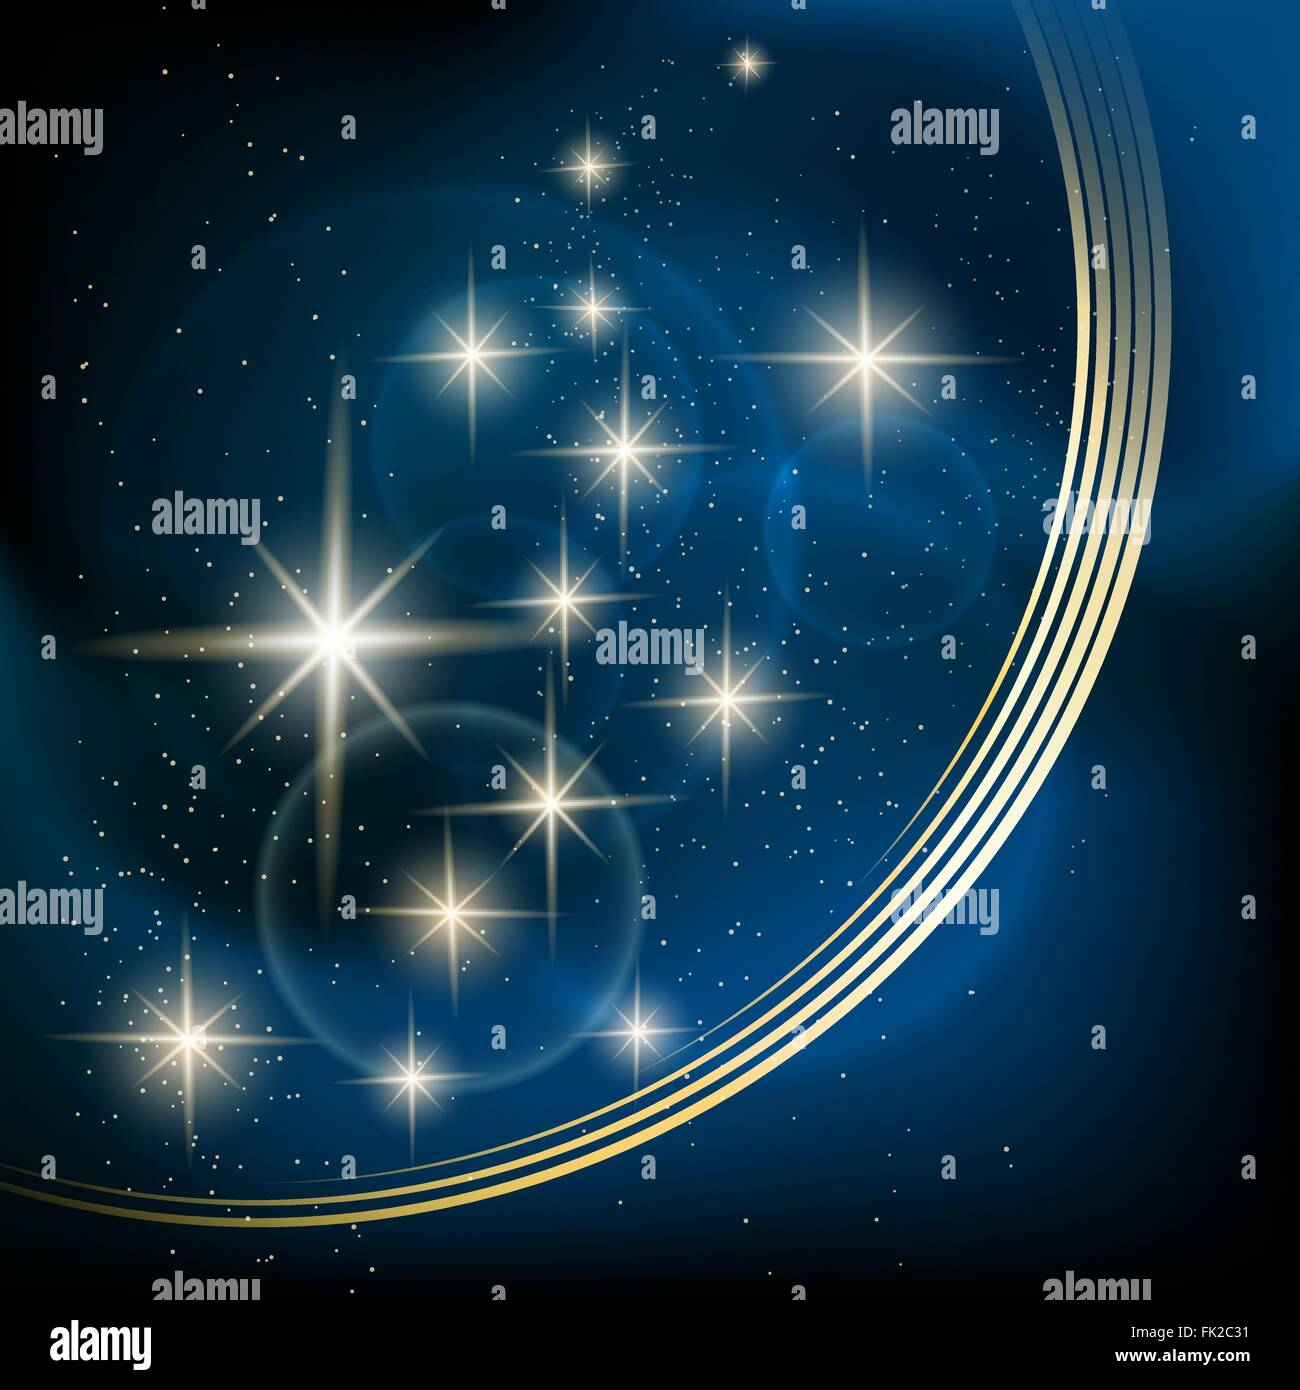 Cosmic background with shining stars. Space illustration for your design. - Stock Vector